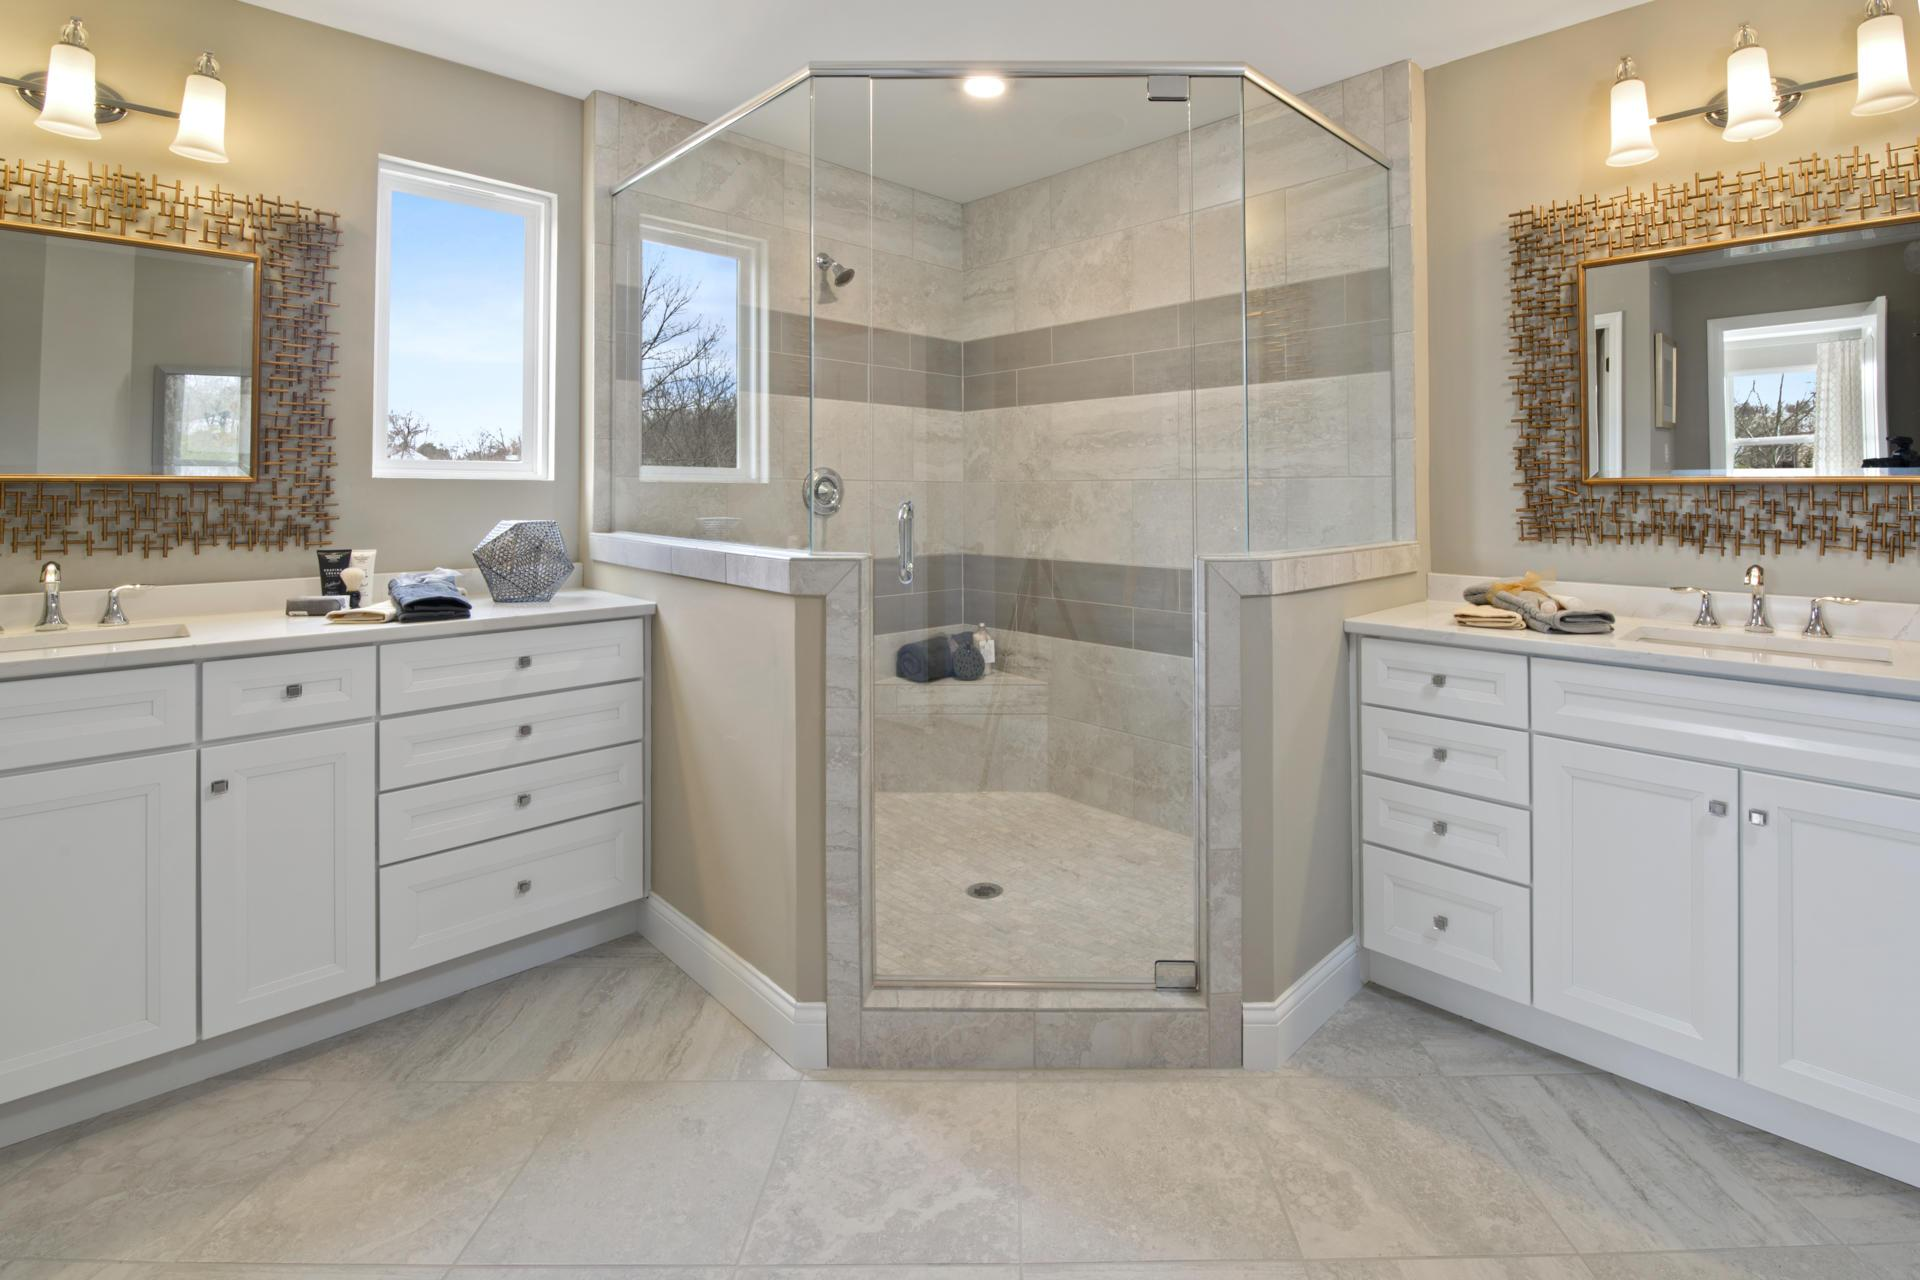 Bathroom featured in the Ash Lawn By Drees Homes in Cincinnati, OH